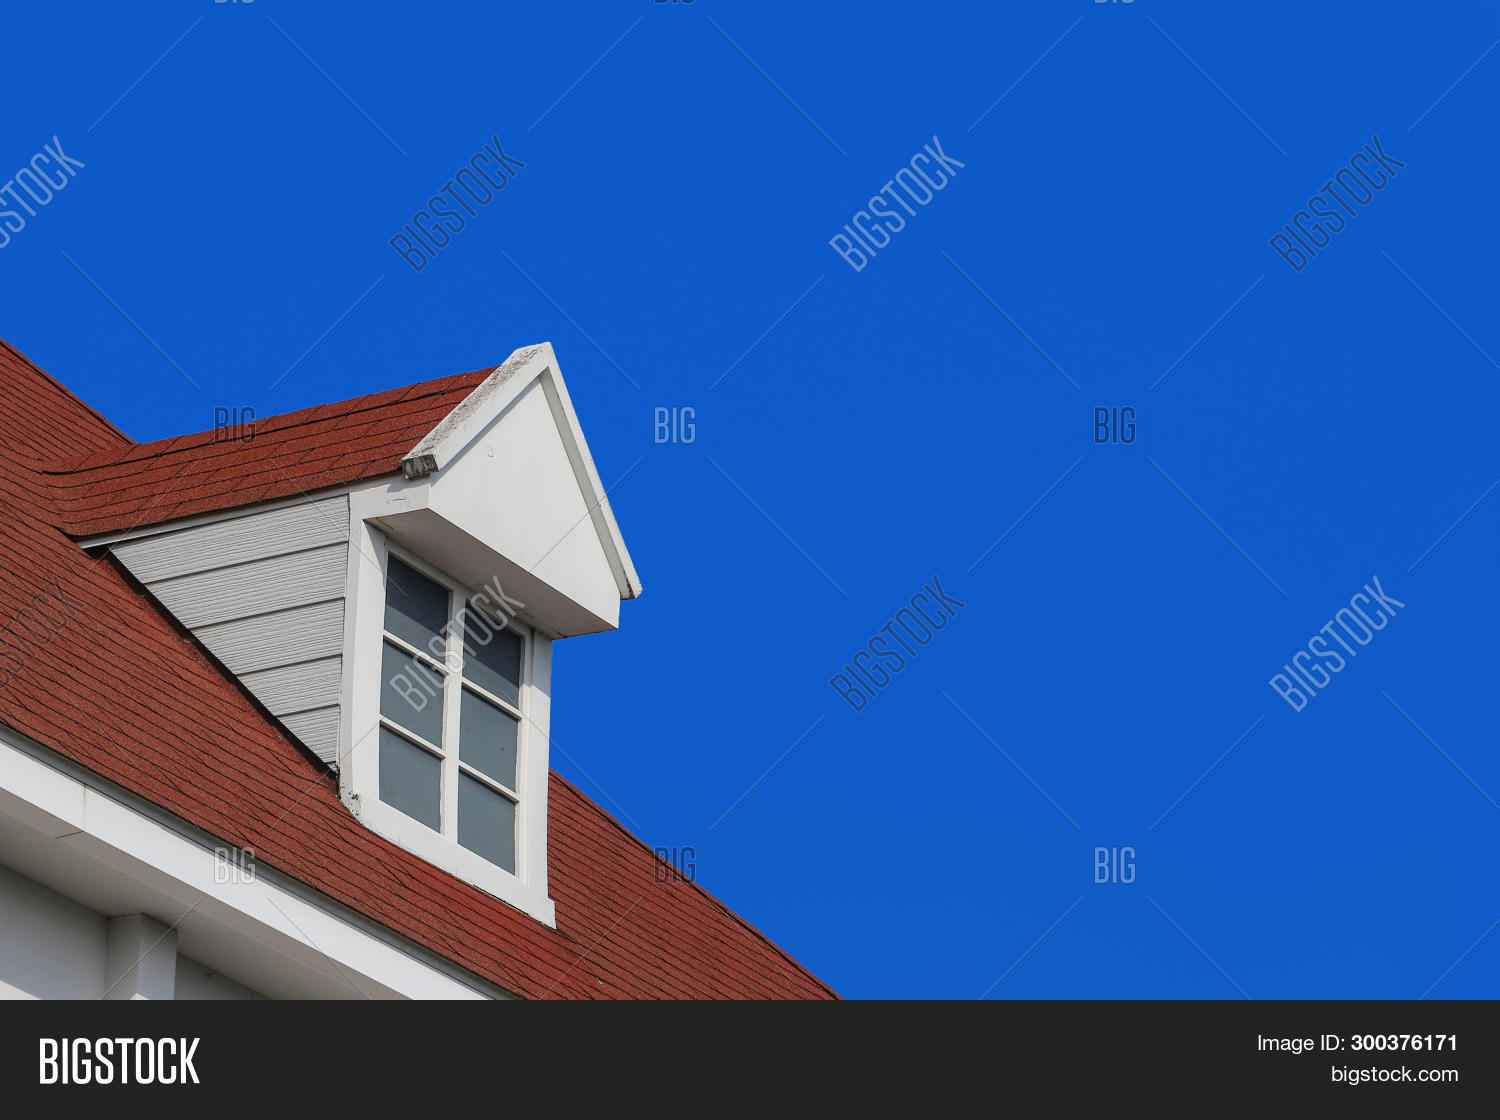 Modern Gable Roof Image Photo Free Trial Bigstock